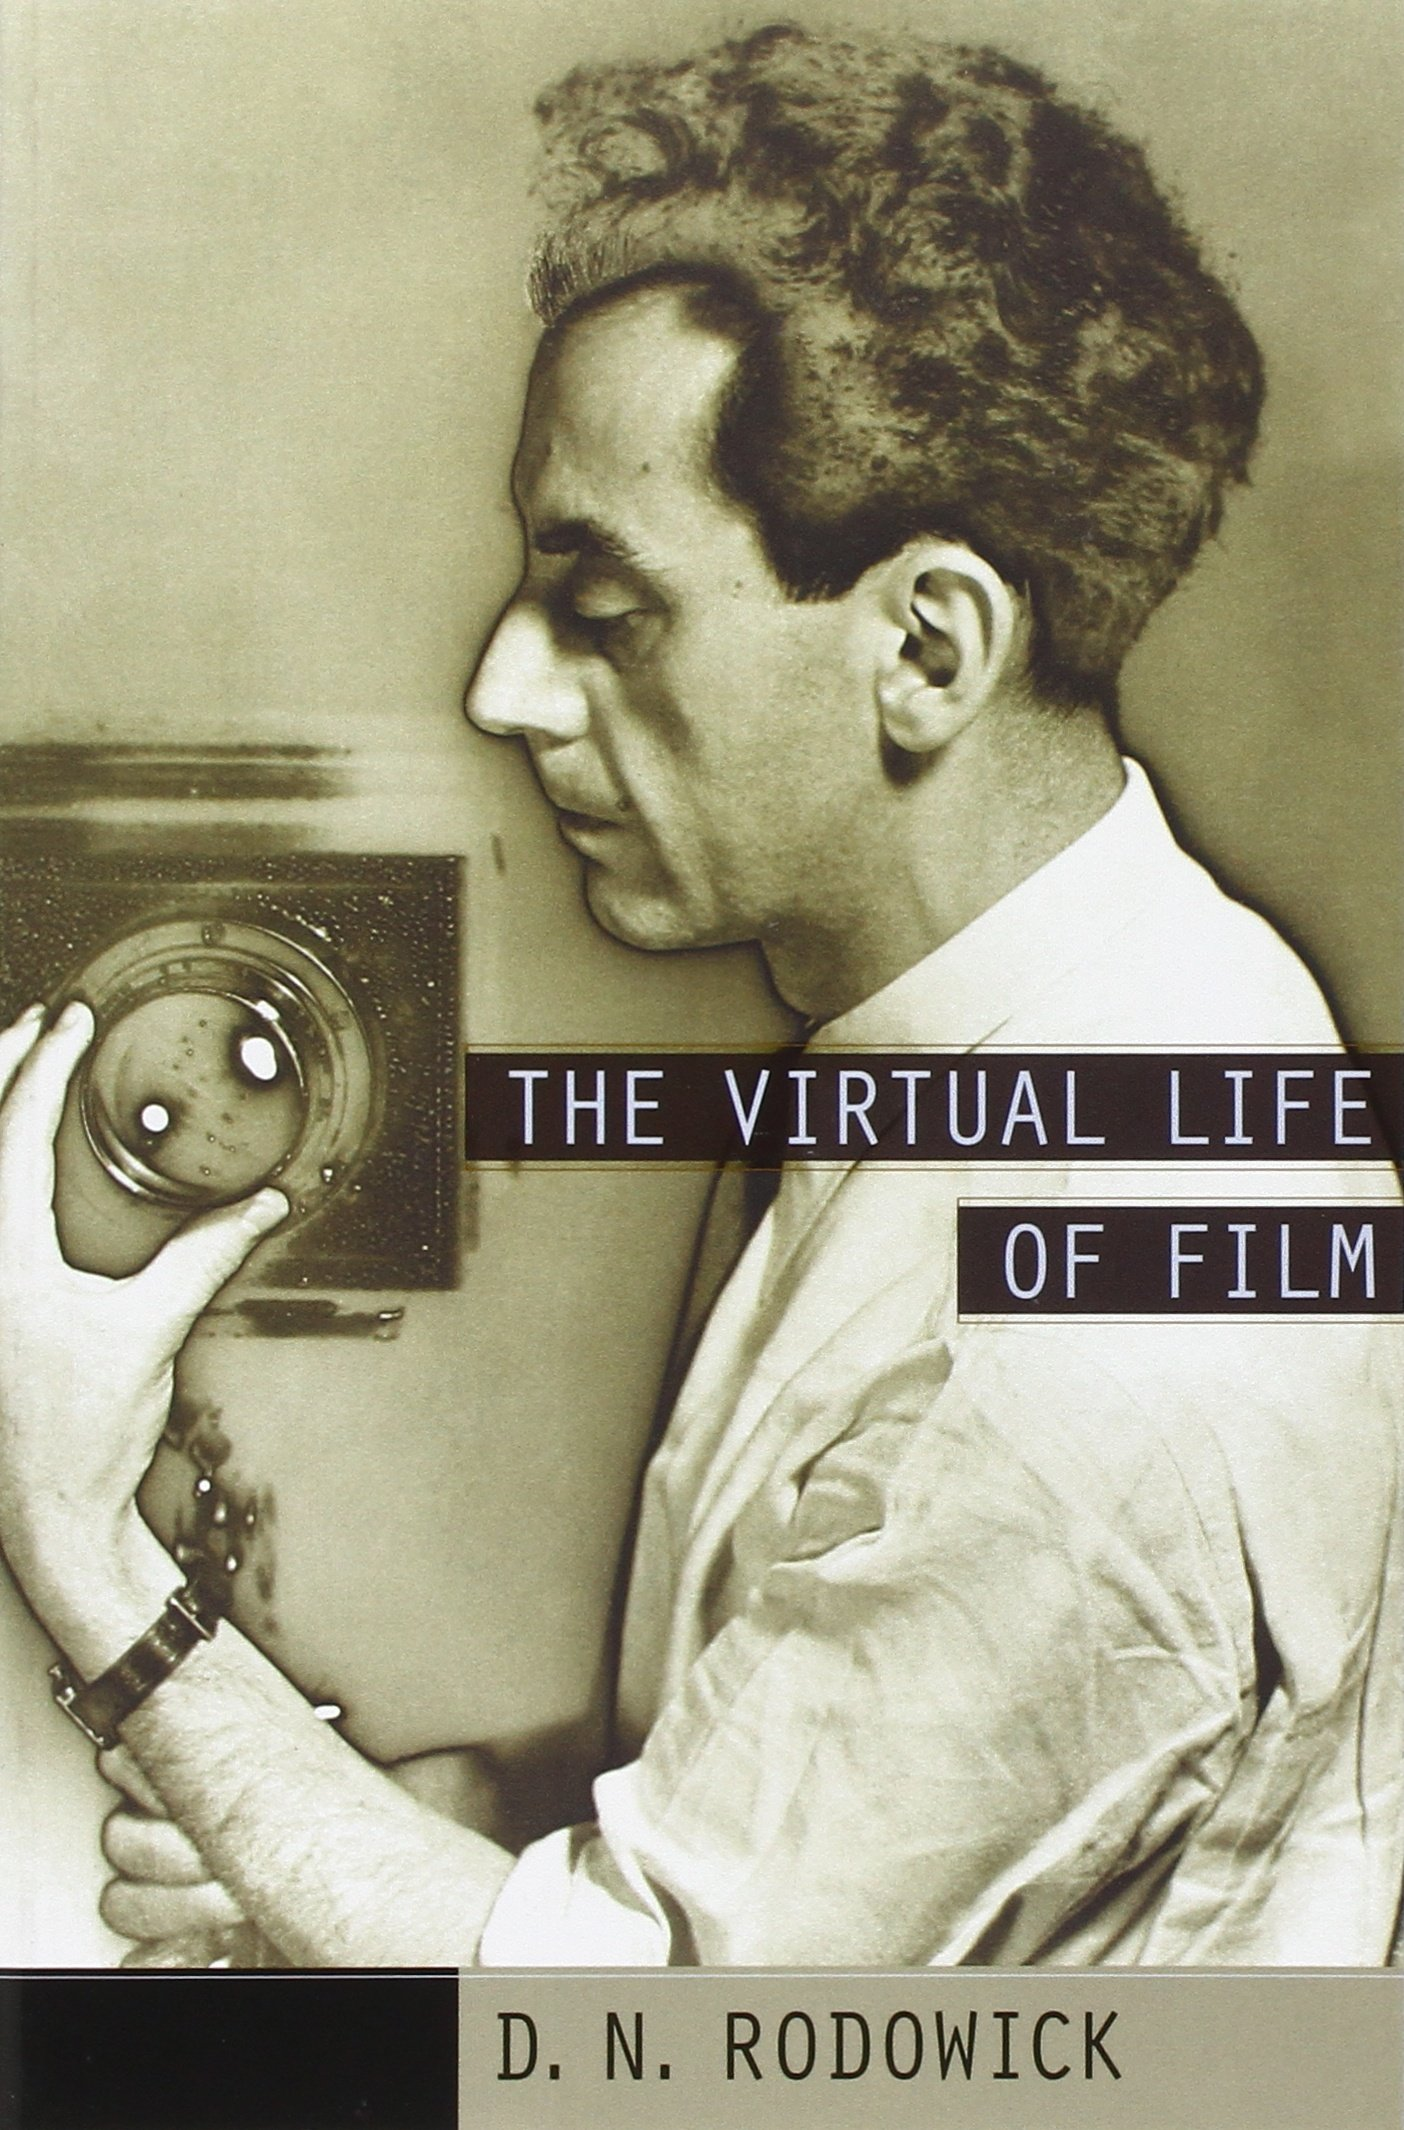 Buy The Virtual Life of Film